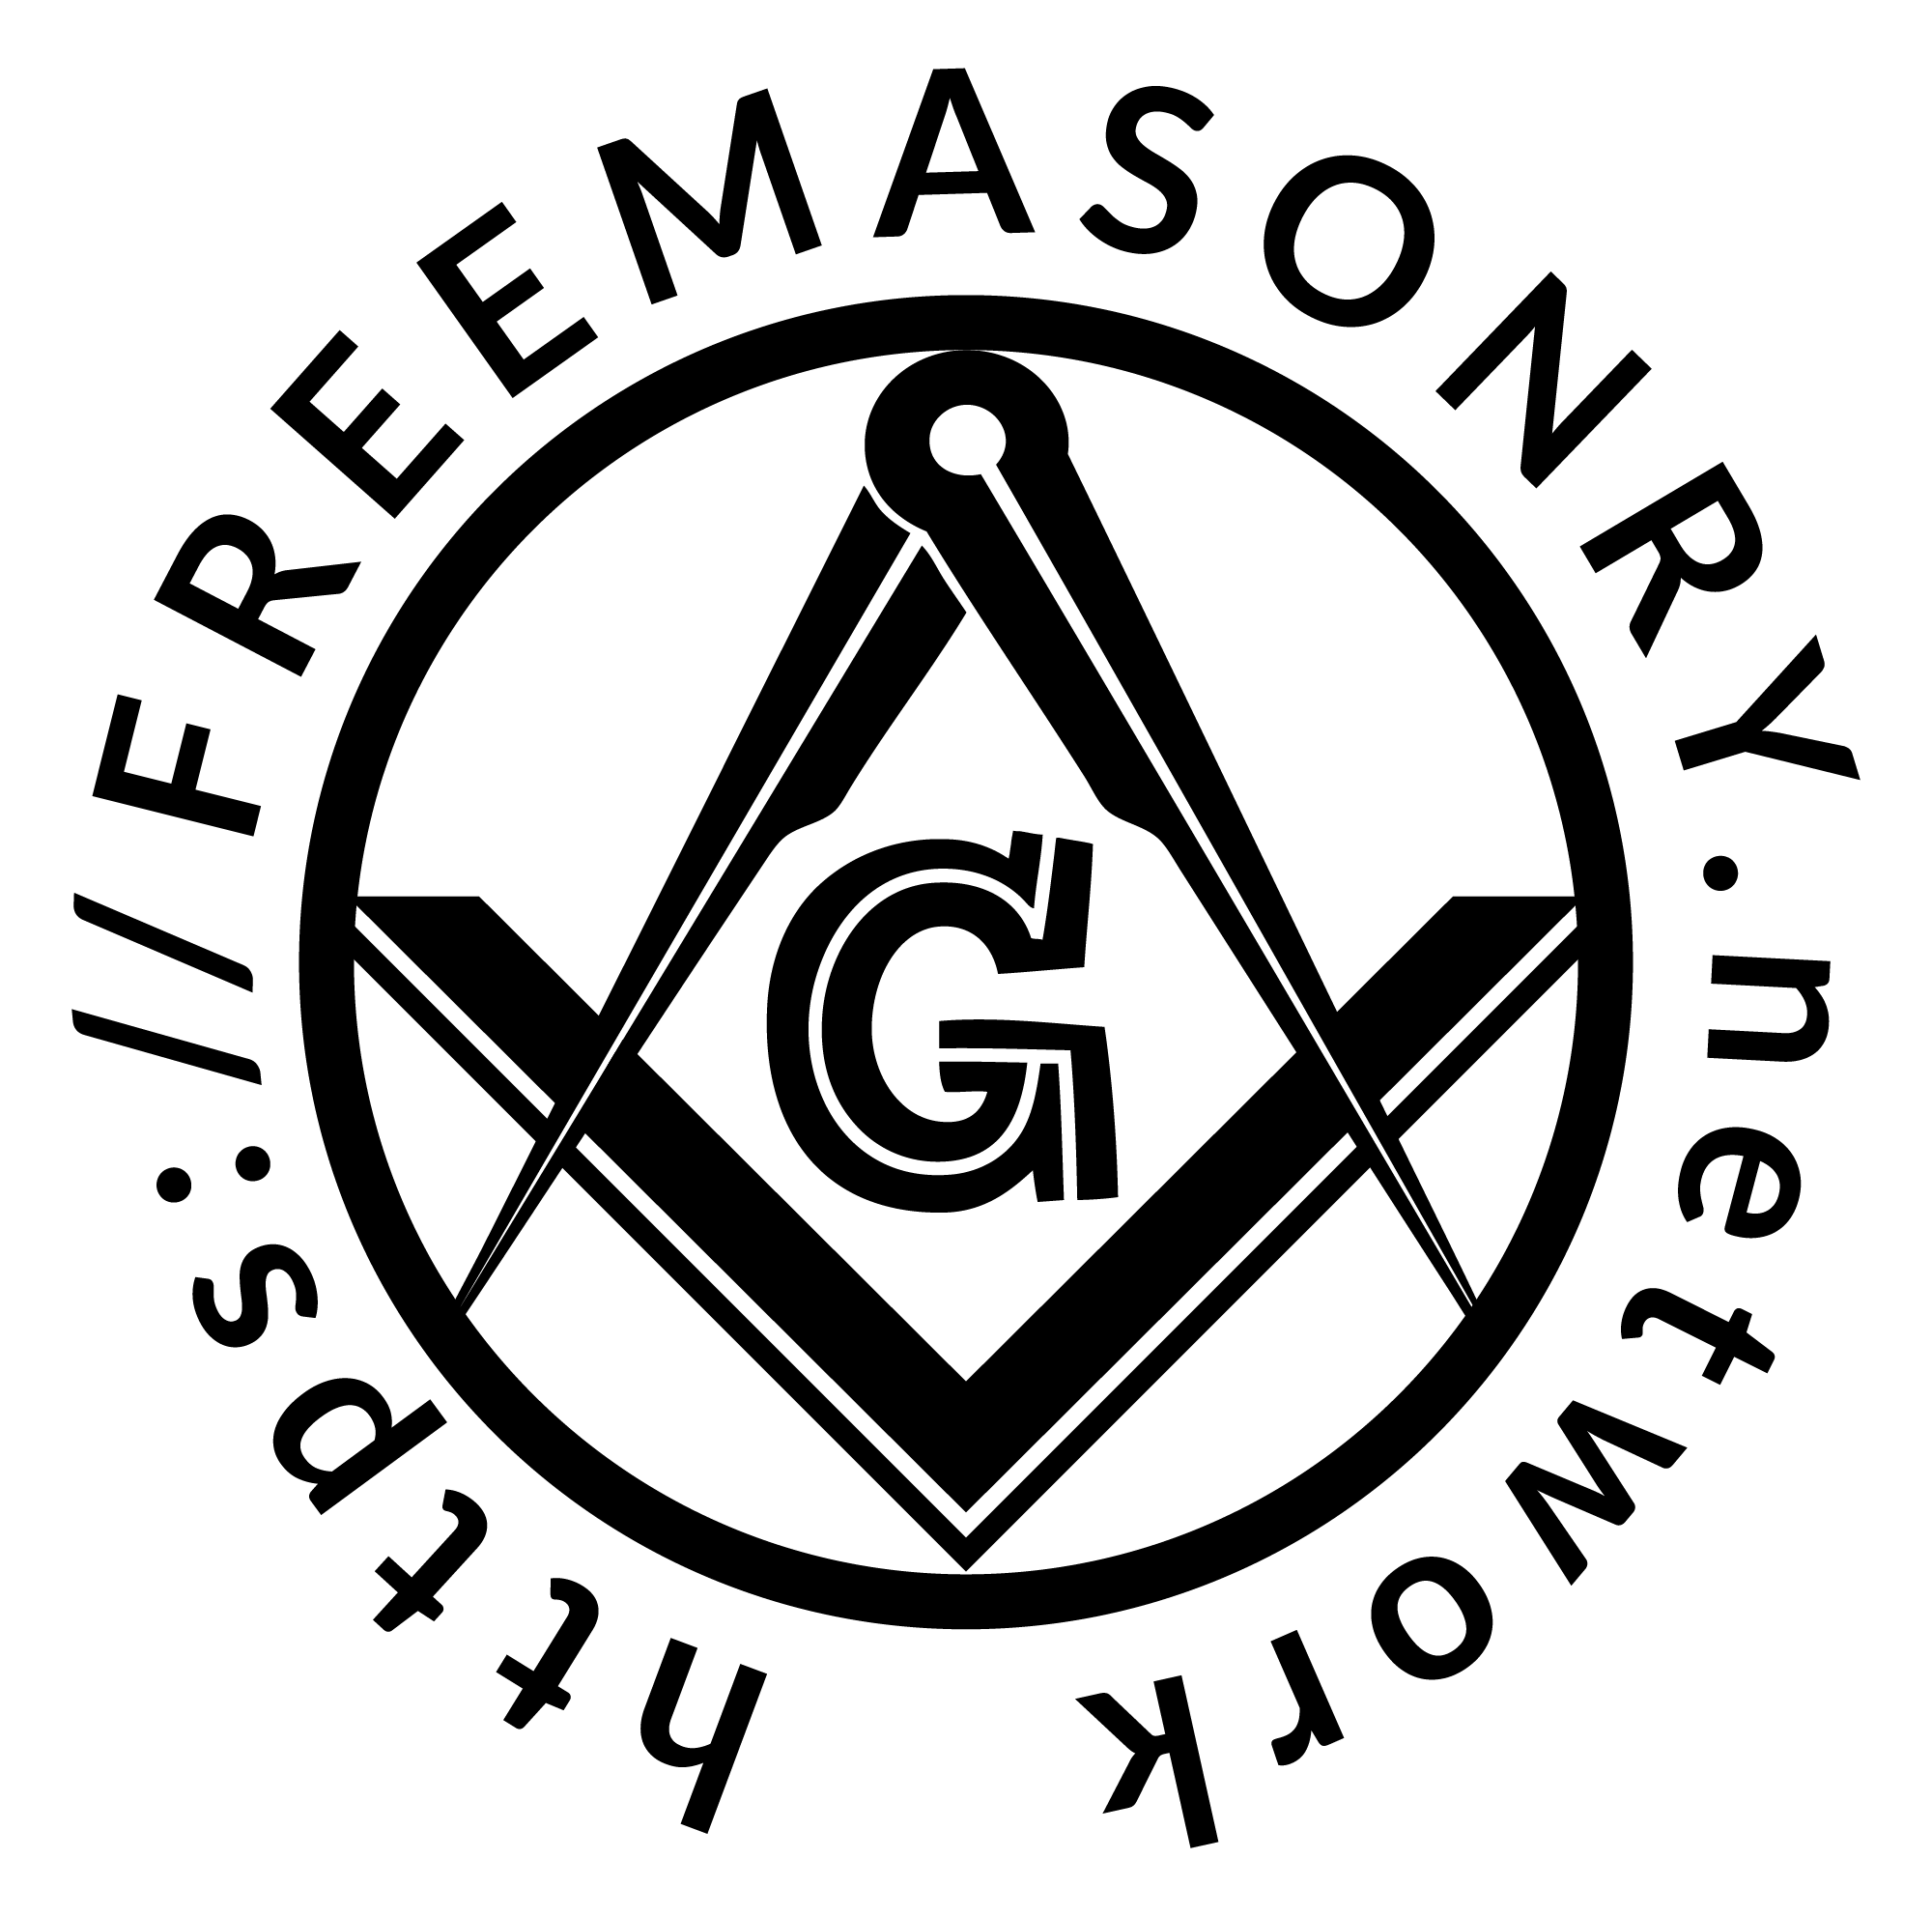 GENERATION GAP IN FREEMASONRY